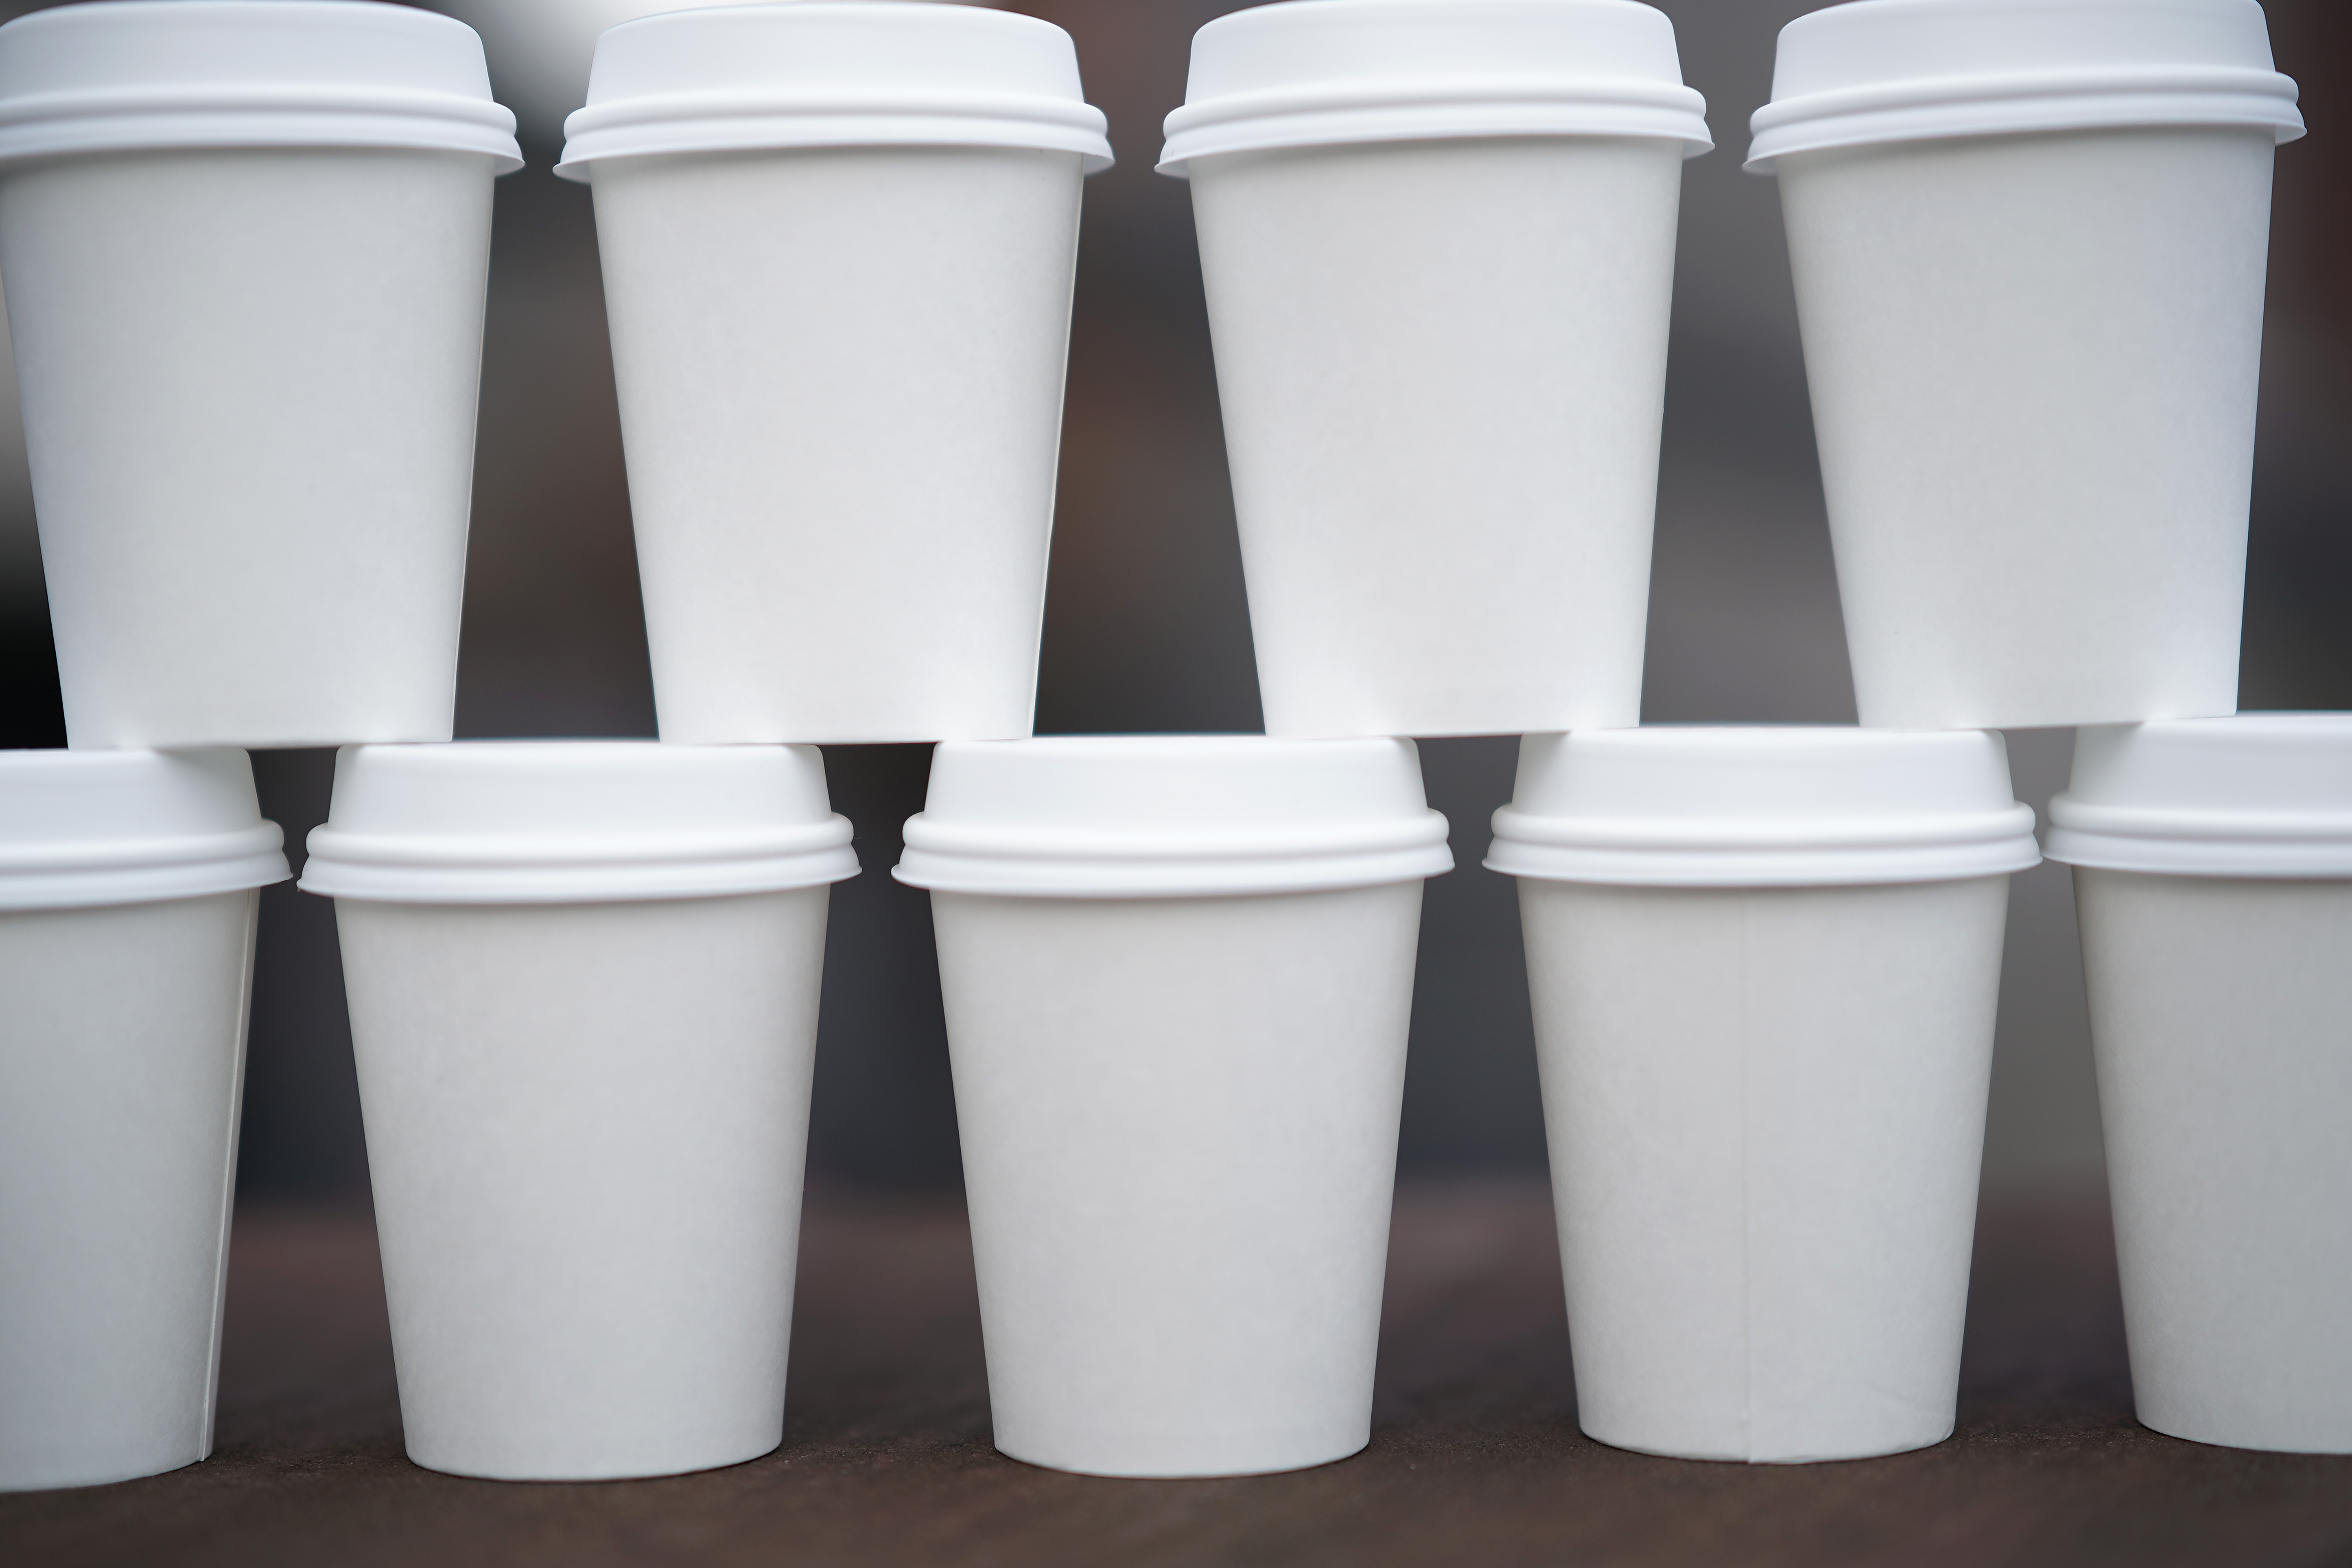 Government Consider Coffee Cup Tax To Fund Recycling